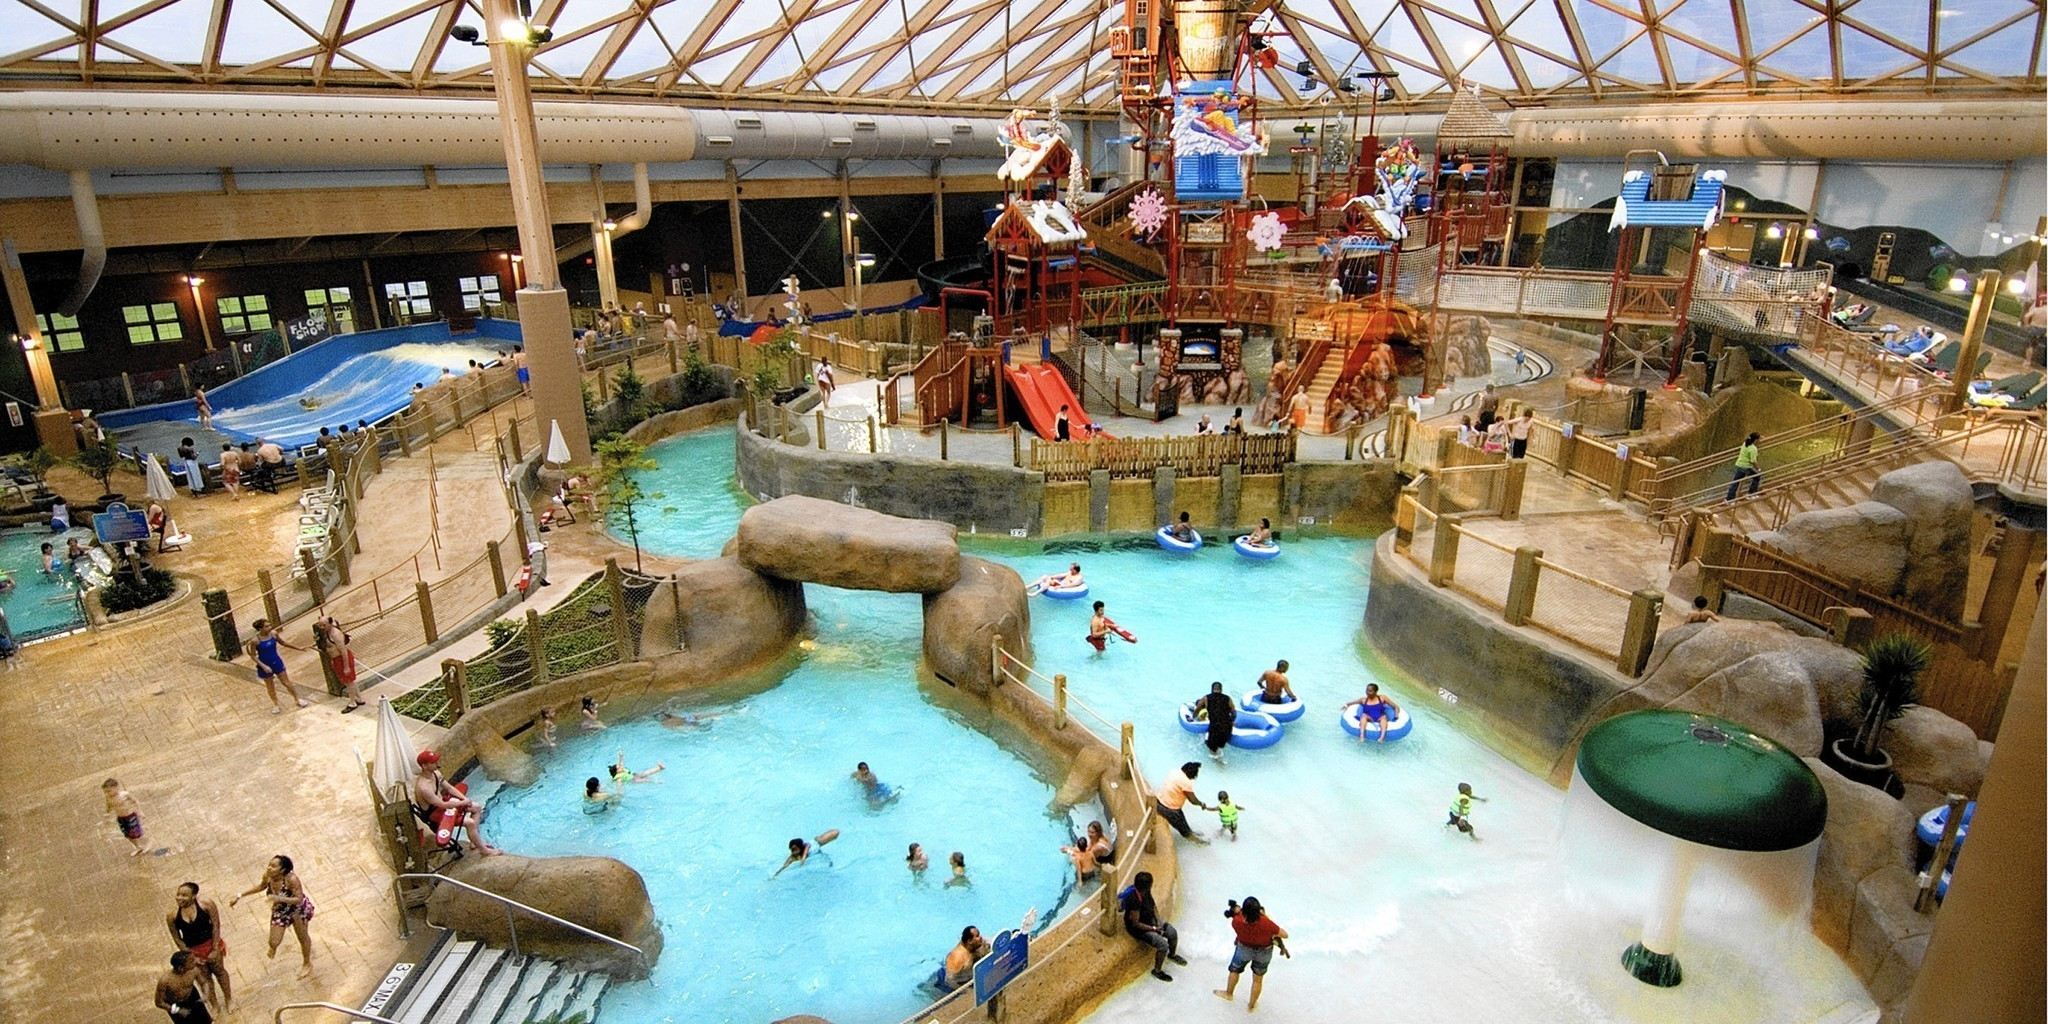 http://www.mcall.com/business/retailwatch/mc-camelback-lodge-aquatopia-indoor-waterpark-0329-20150328-column.html#page=1